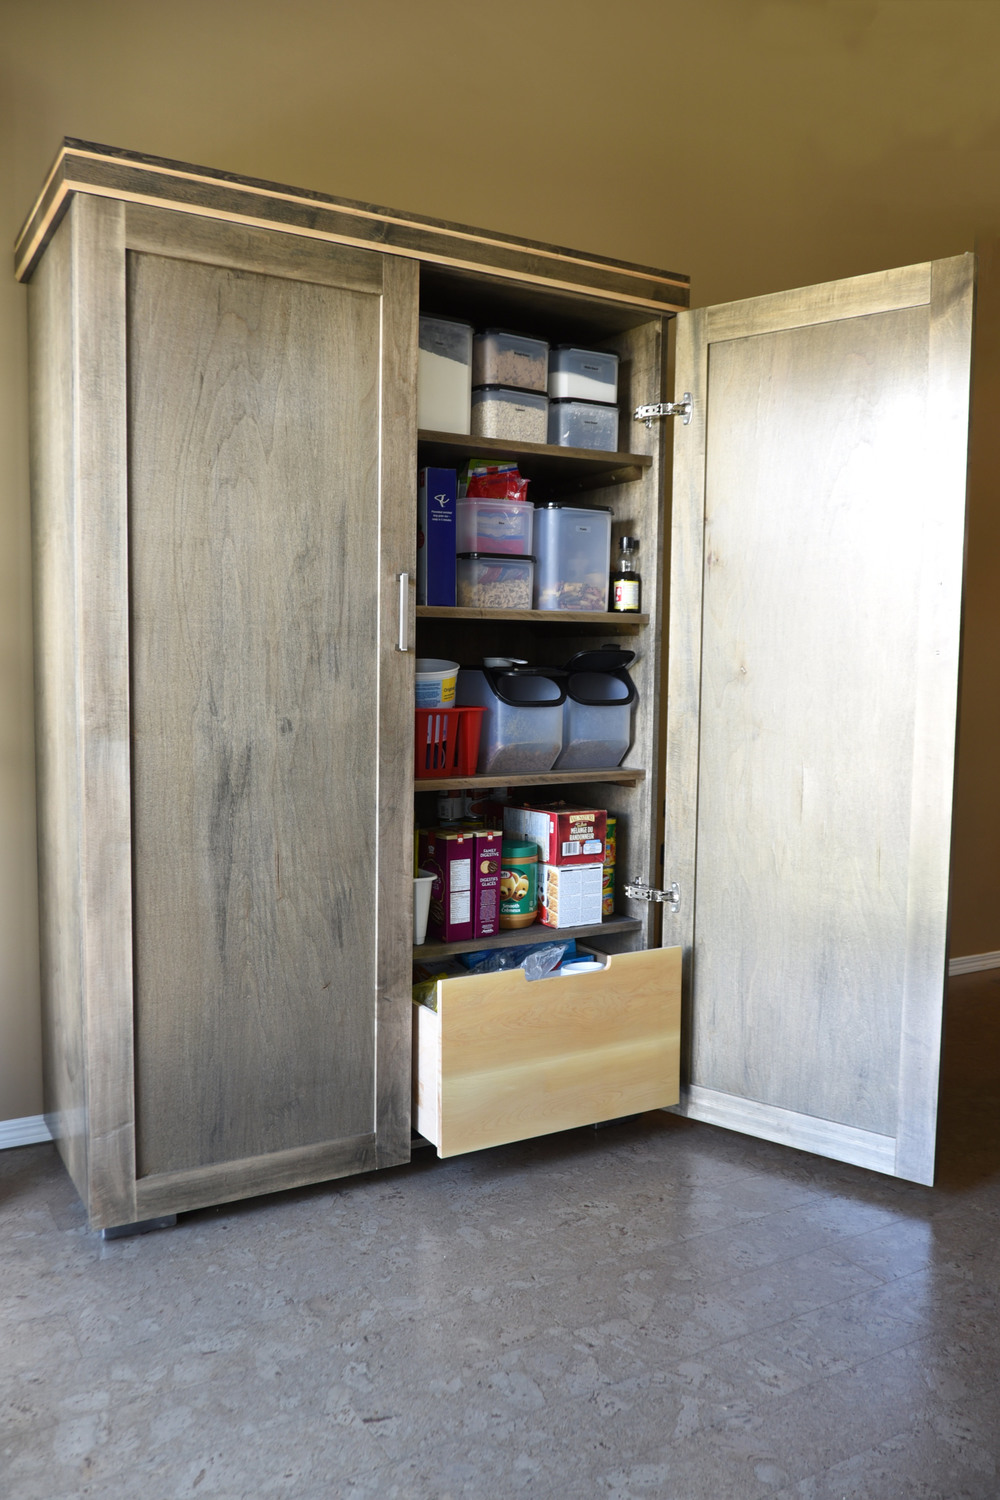 mortise-and-tenon-pantry.jpg